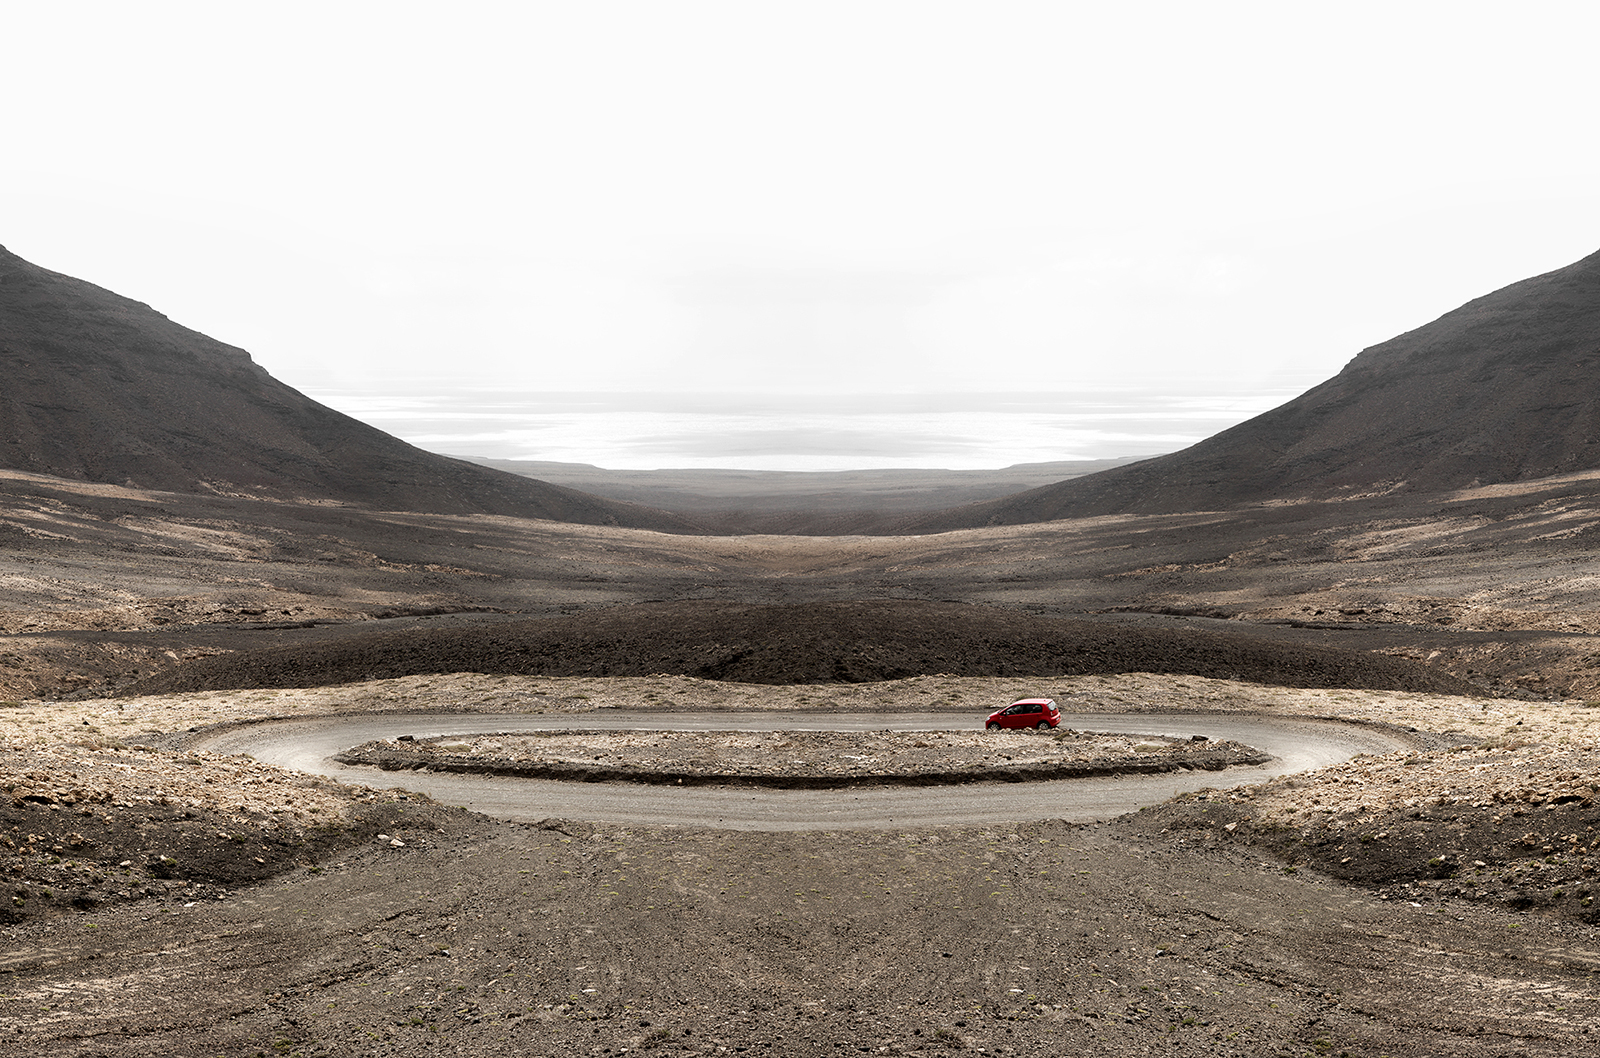 photography series: perspe x by gustav willeit